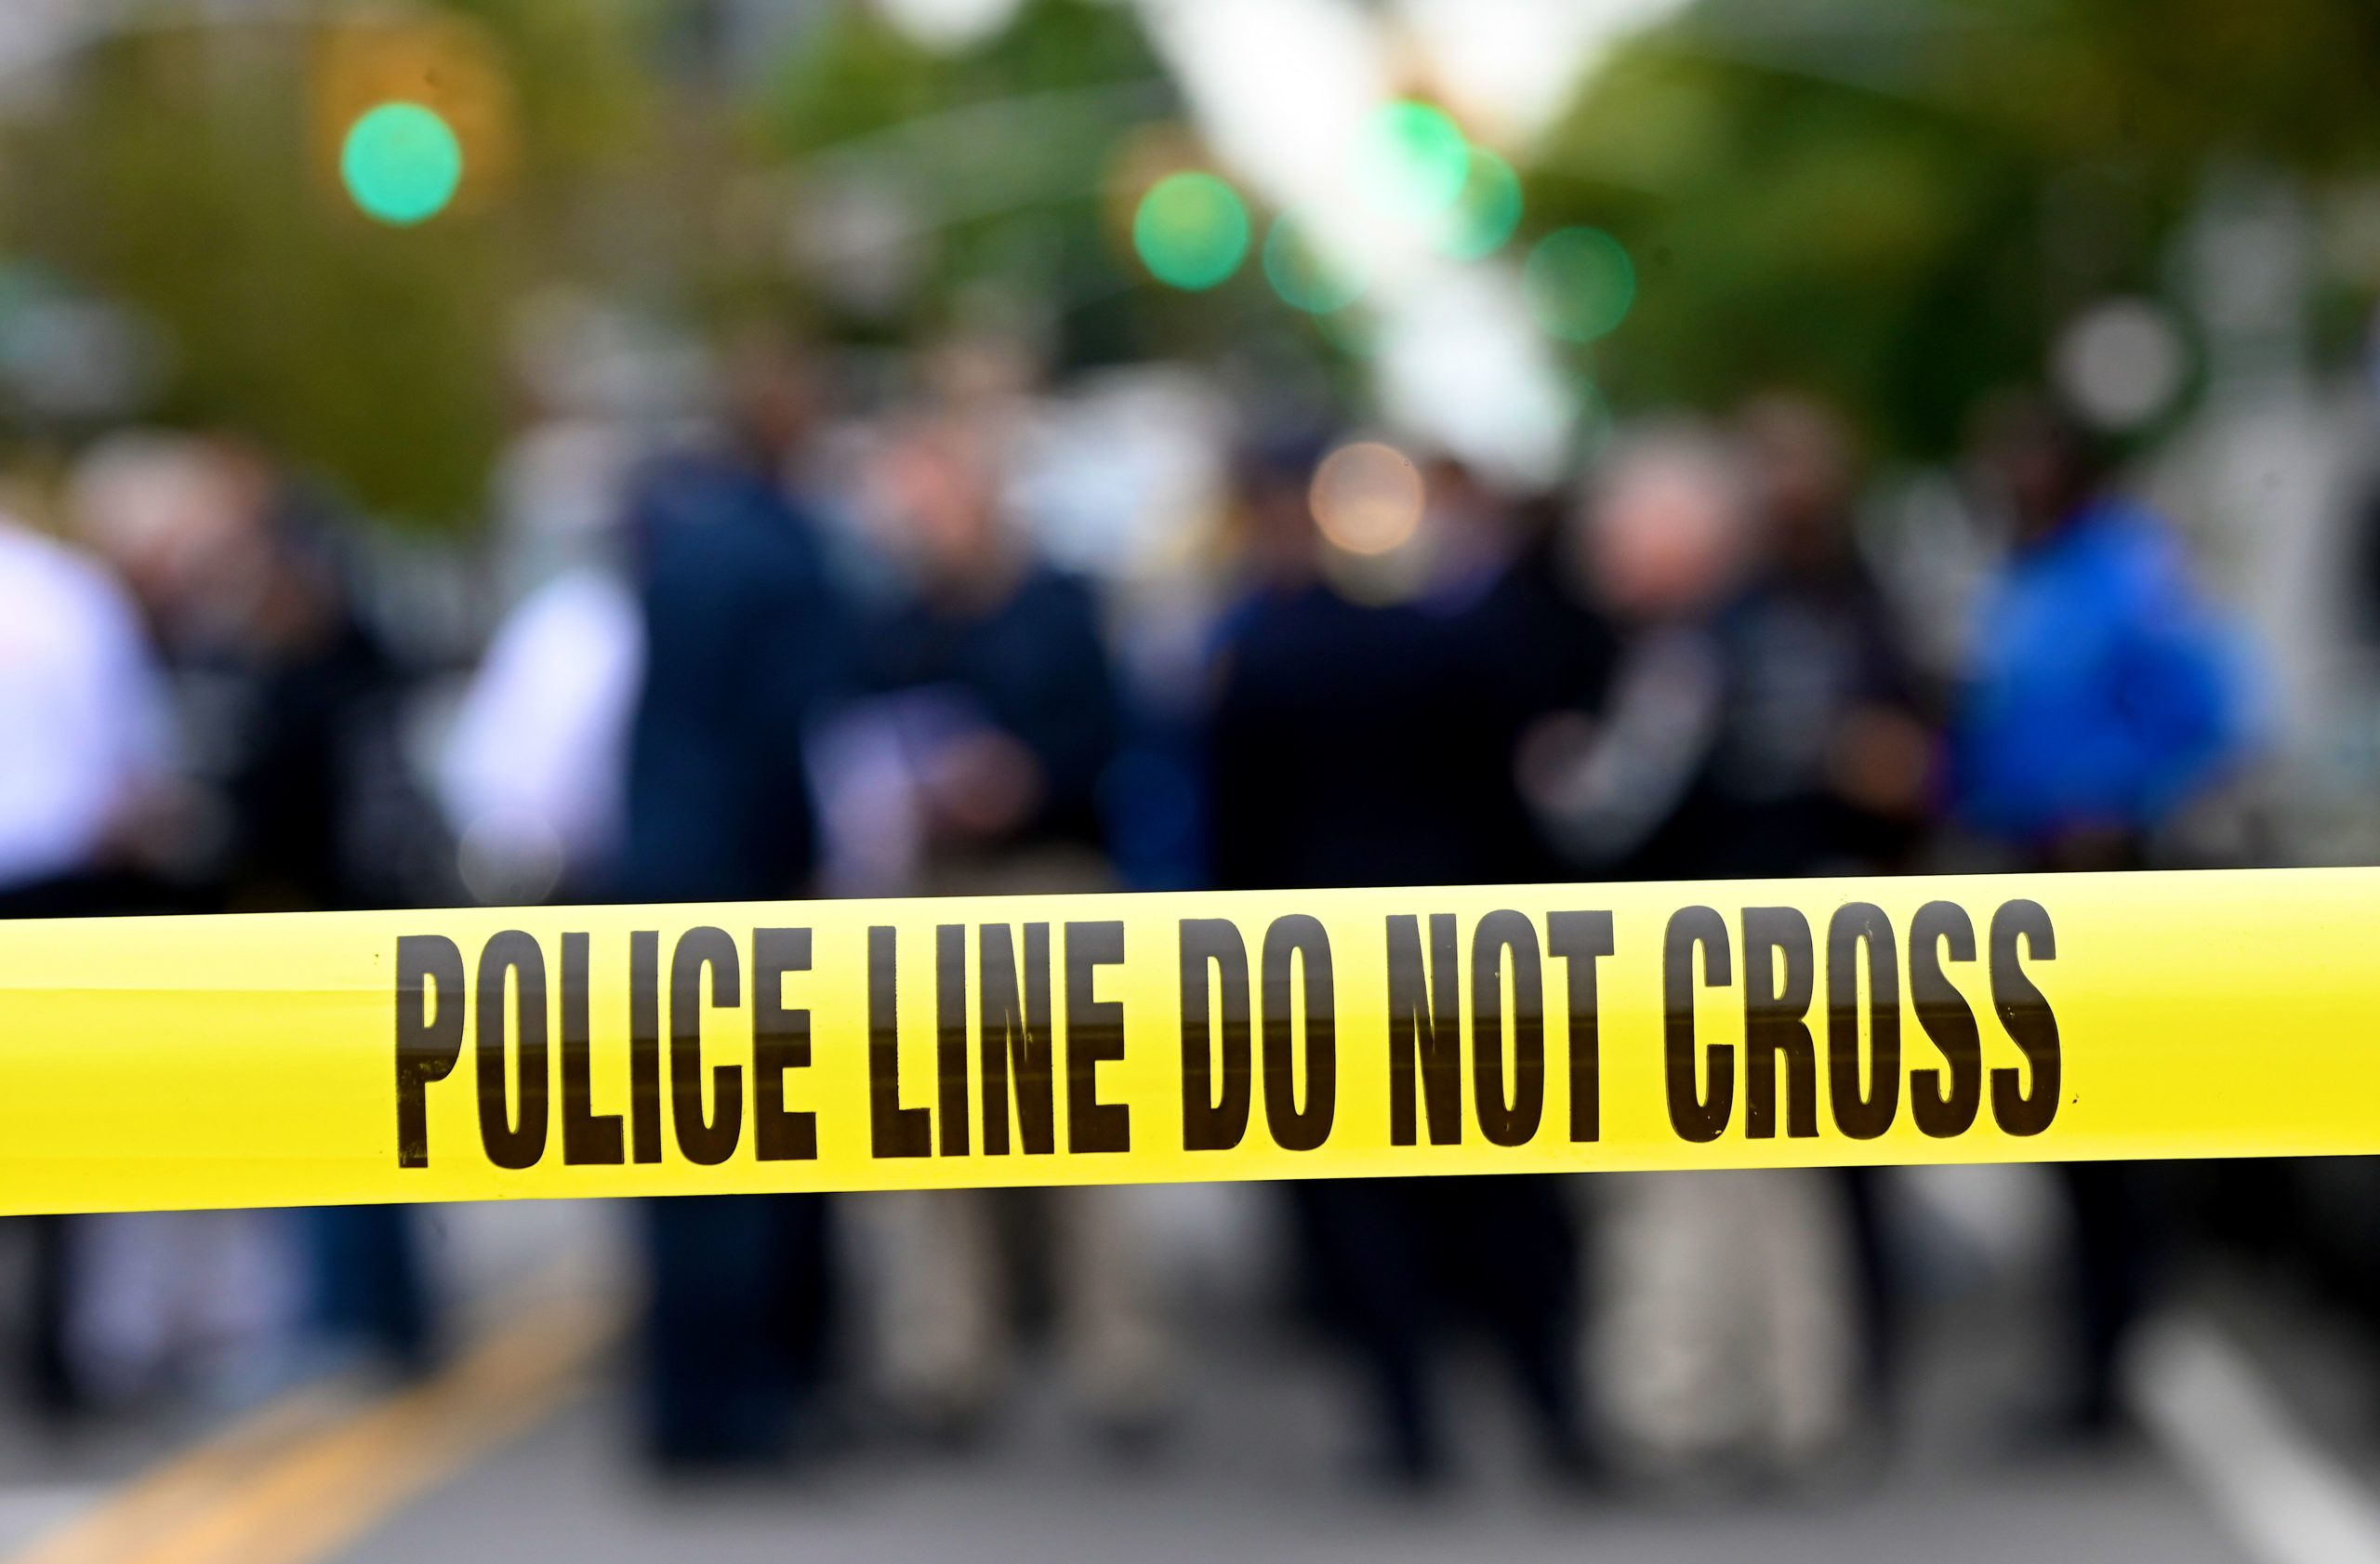 Police tape secures a crime scene outside a club after a shooting in Brooklyn on October 12, 2019. - At least four people died and three were wounded in a shooting at a social club in New York eary Saturday, police said. No one has been arrested over the shooting, which took place in Brooklyn, and the motive and exact circumstances are not known, a New York police official told AFP. The local affiliate of ABC News described the place where the shooting took place as an after-hours club. (Photo by Johannes EISELE / AFP) (Photo by JOHANNES EISELE/AFP via Getty Images)